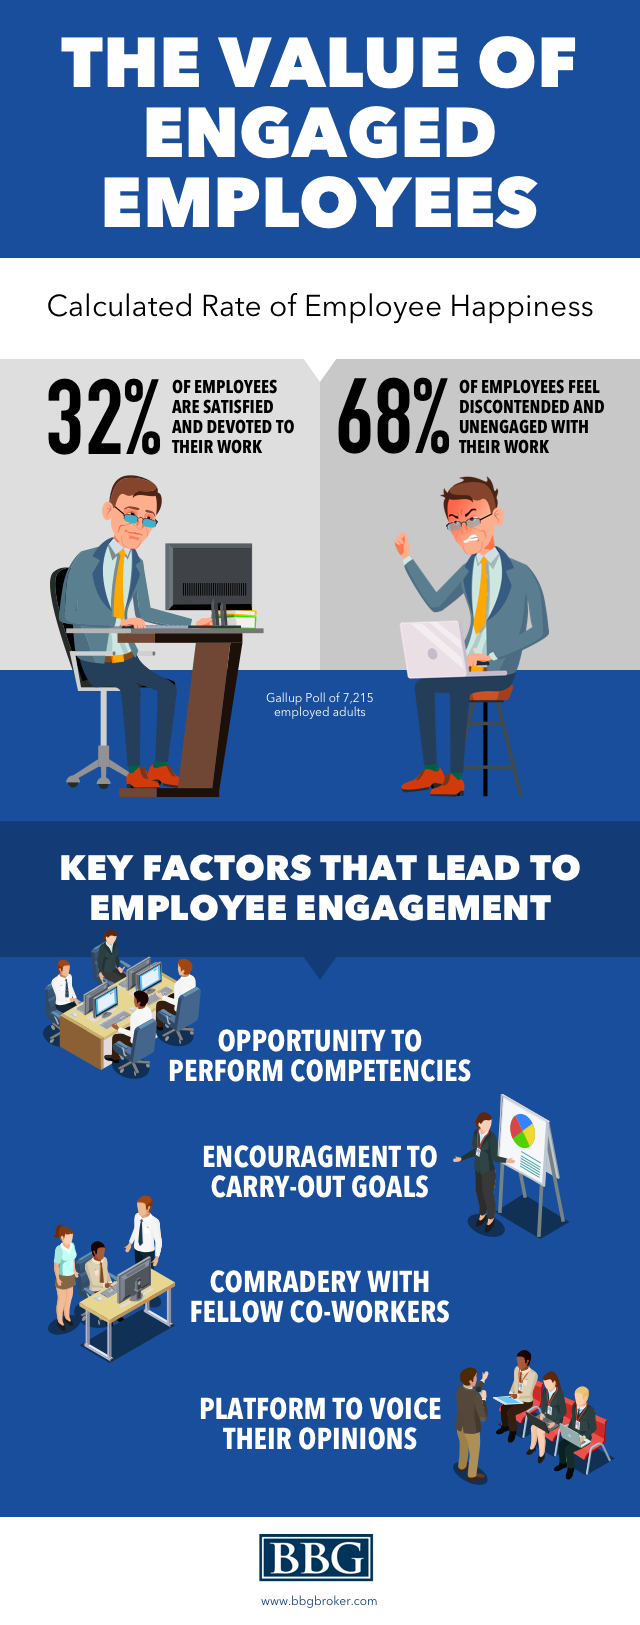 The Value of Engaged Employees Infographic